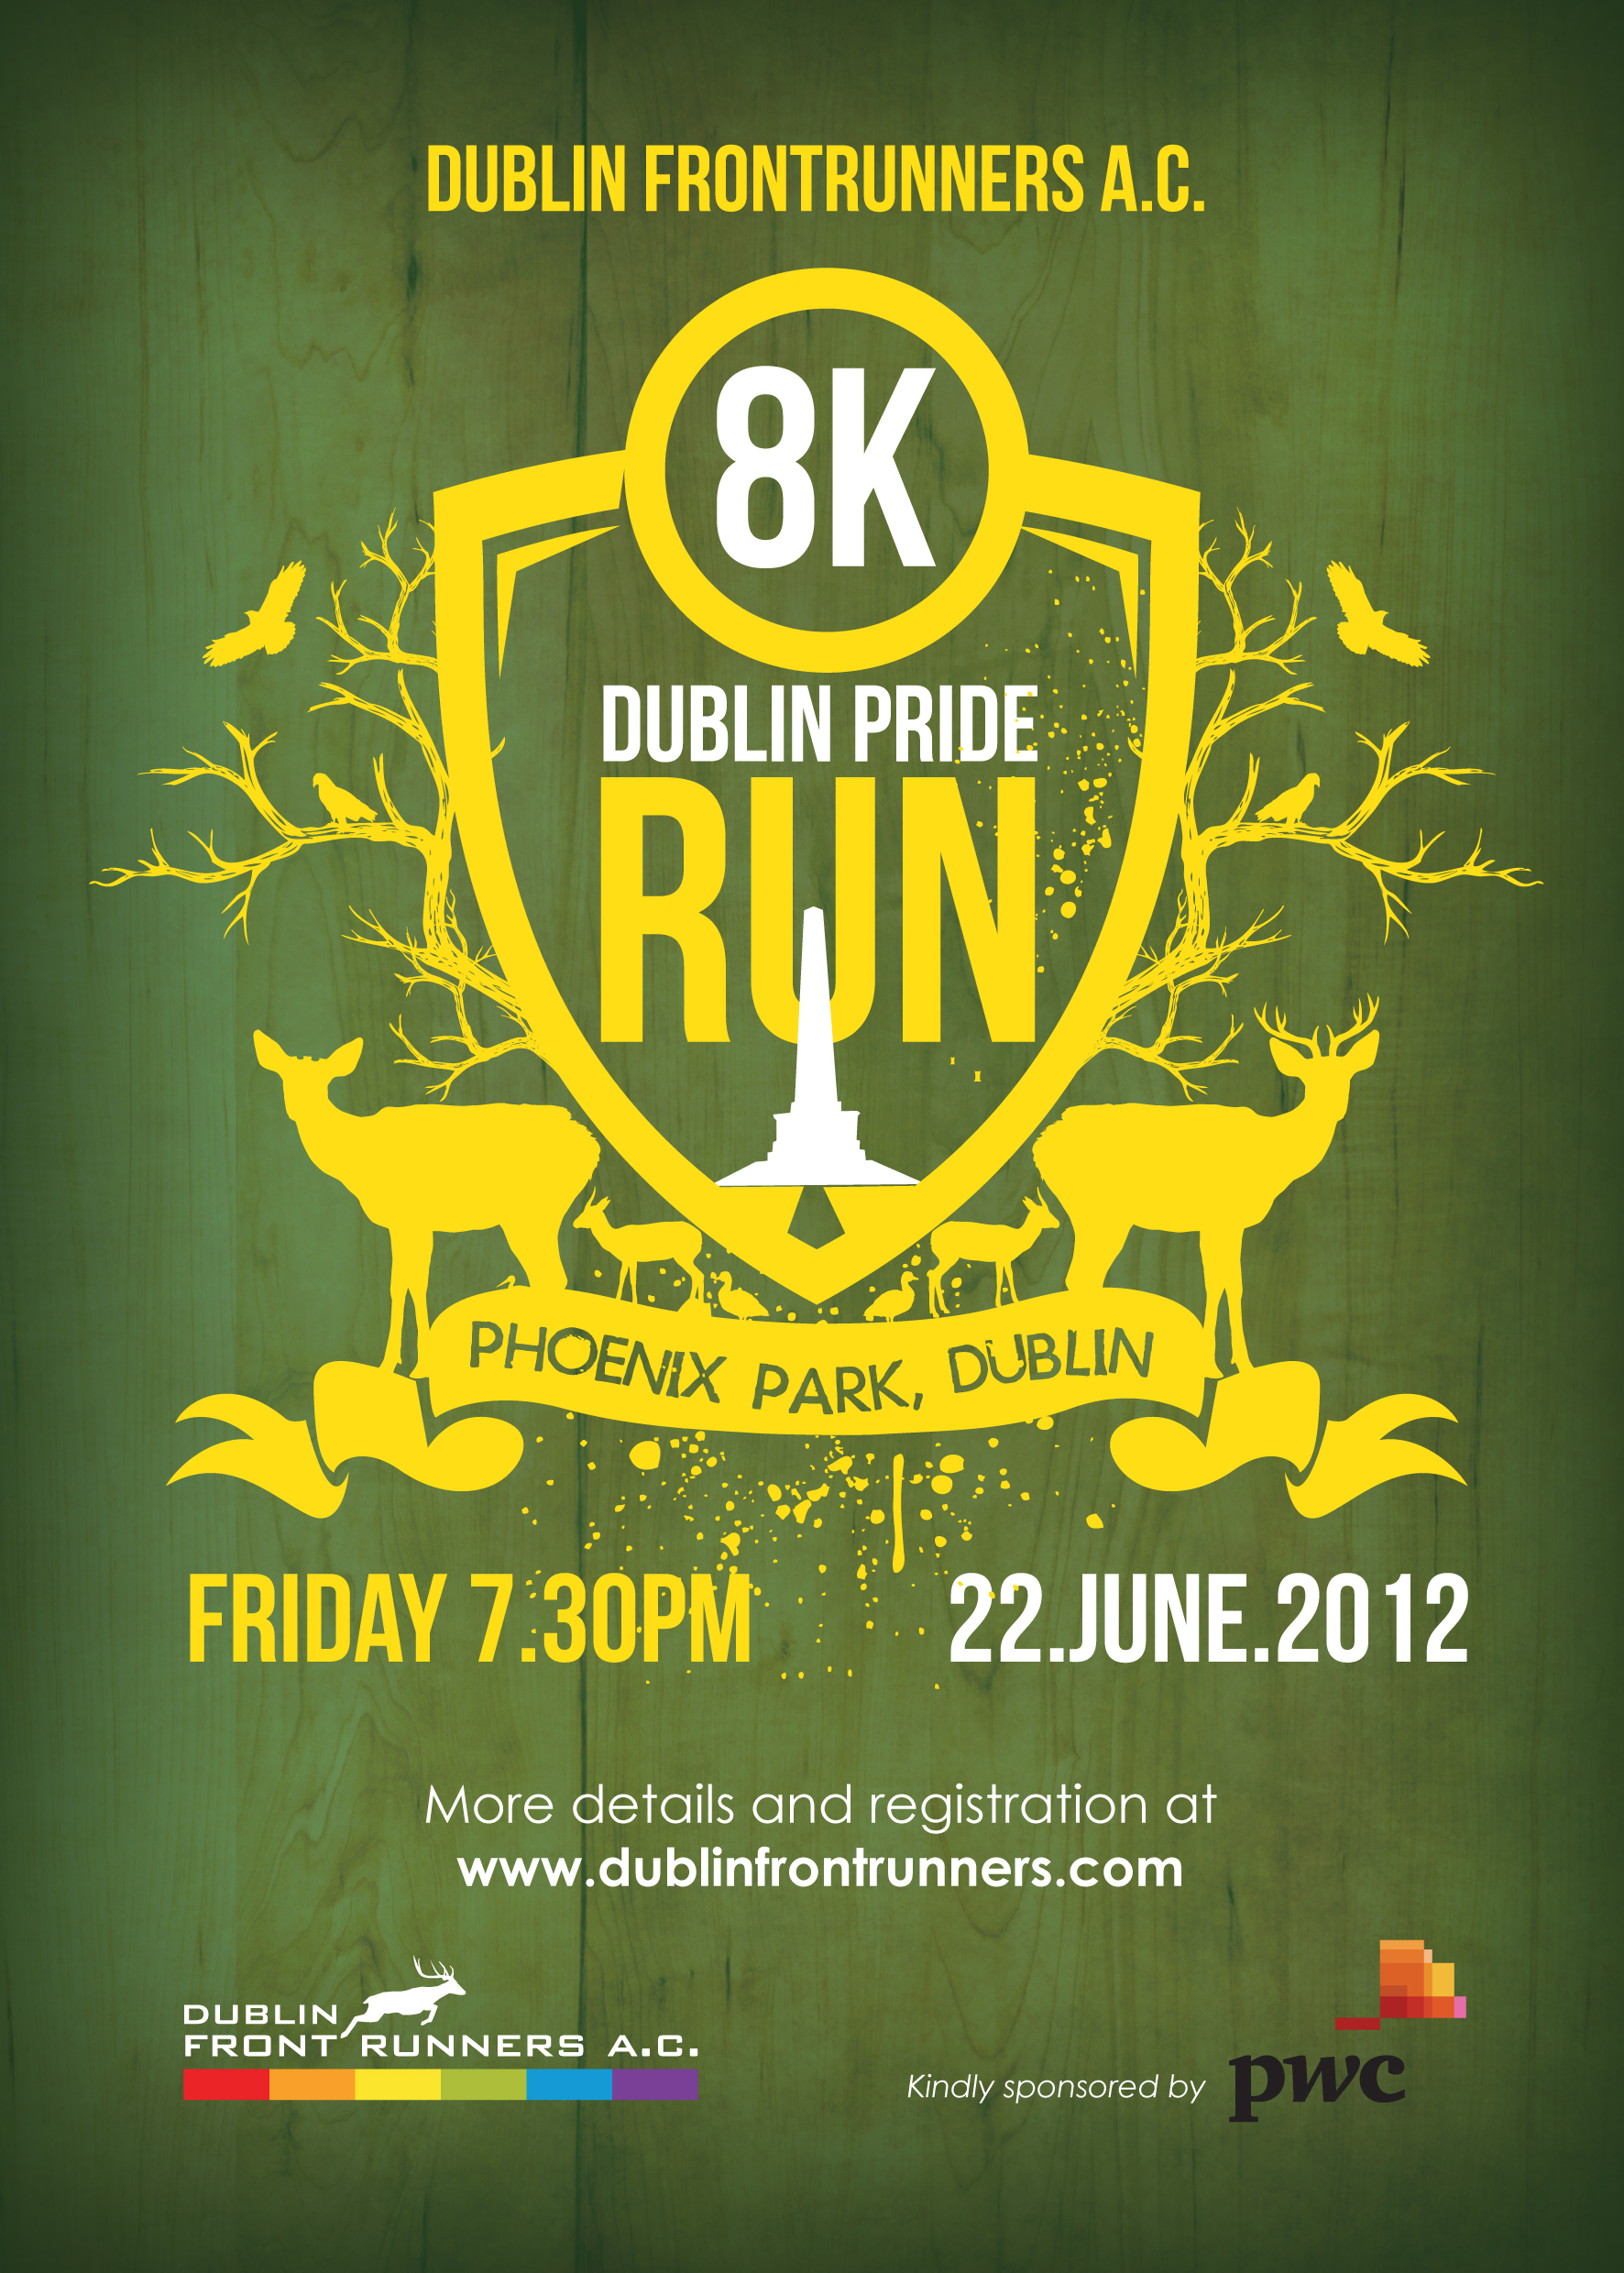 Dublin 8k Pride Run